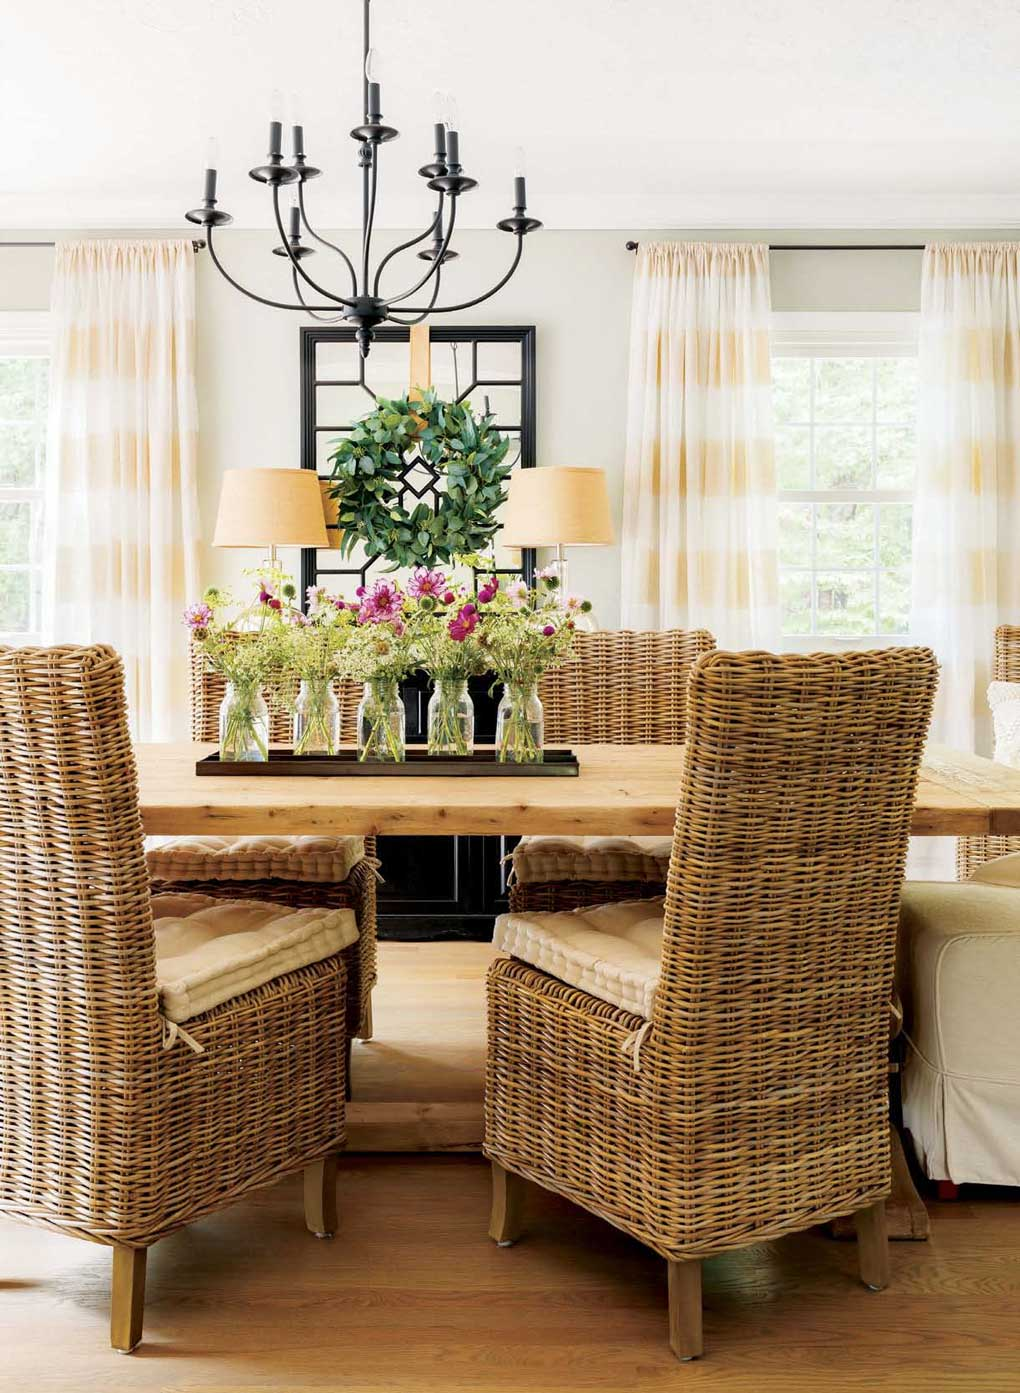 Rustic farmhouse table surrounded by a mix of woven and upholstered chairs.